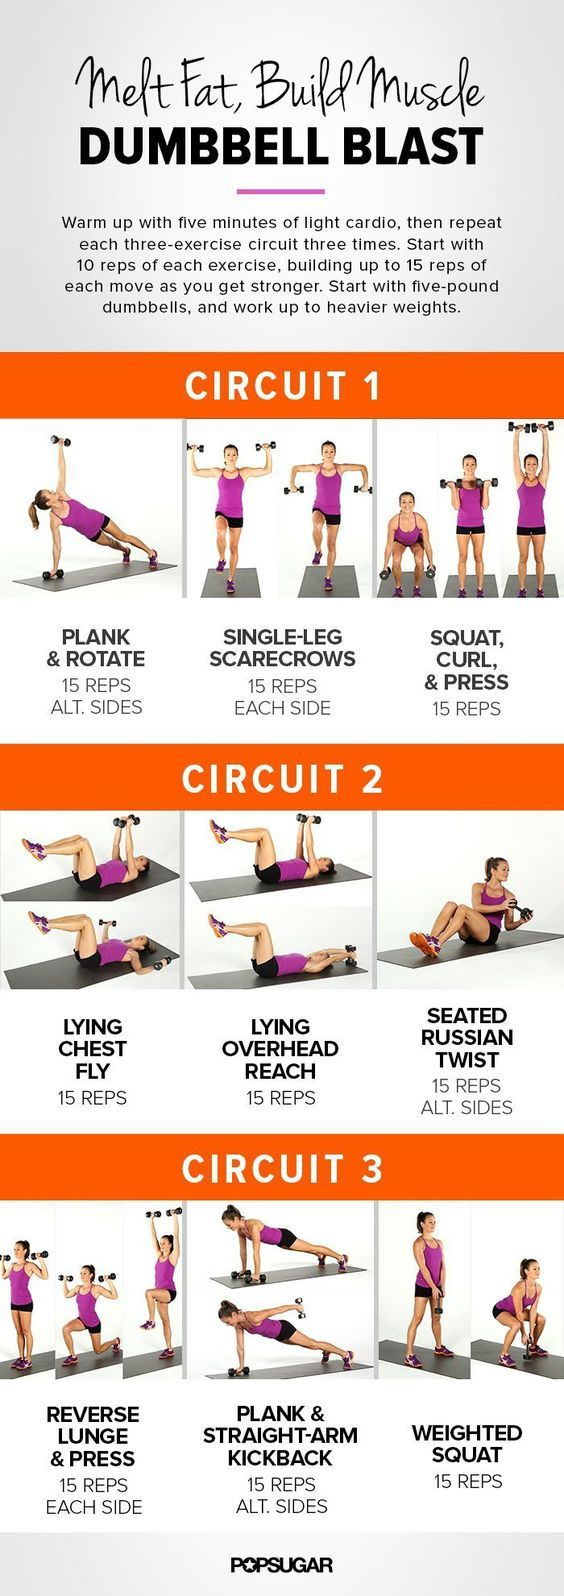 Maximize Your Workout Results With Our Printable Dumbbell Workout